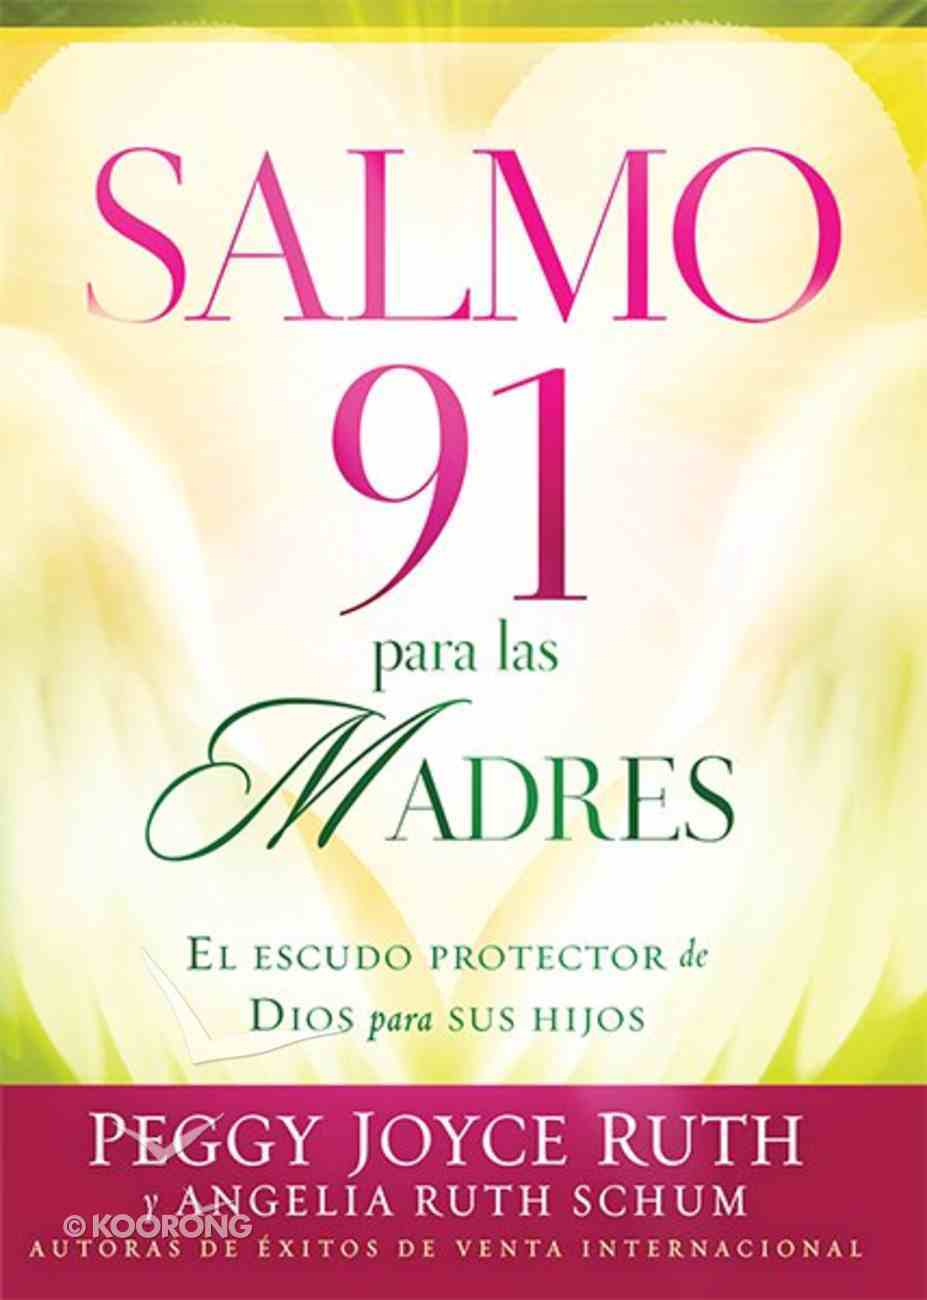 Salmo 91 Para Las Madres (Psalm 91 For Mothers) Paperback